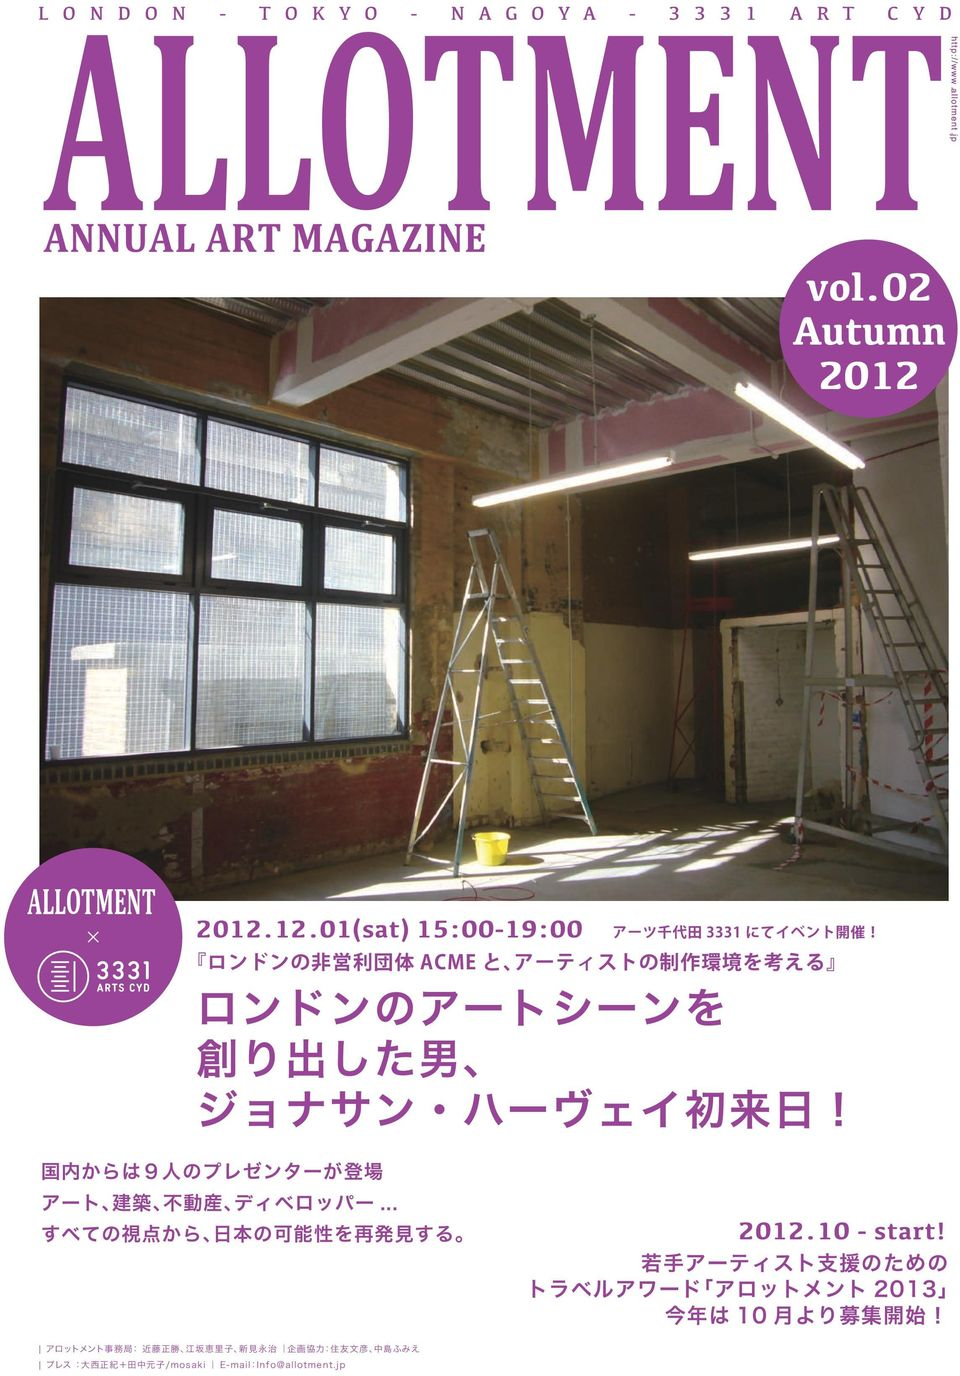 vol.02 Autumn 2012